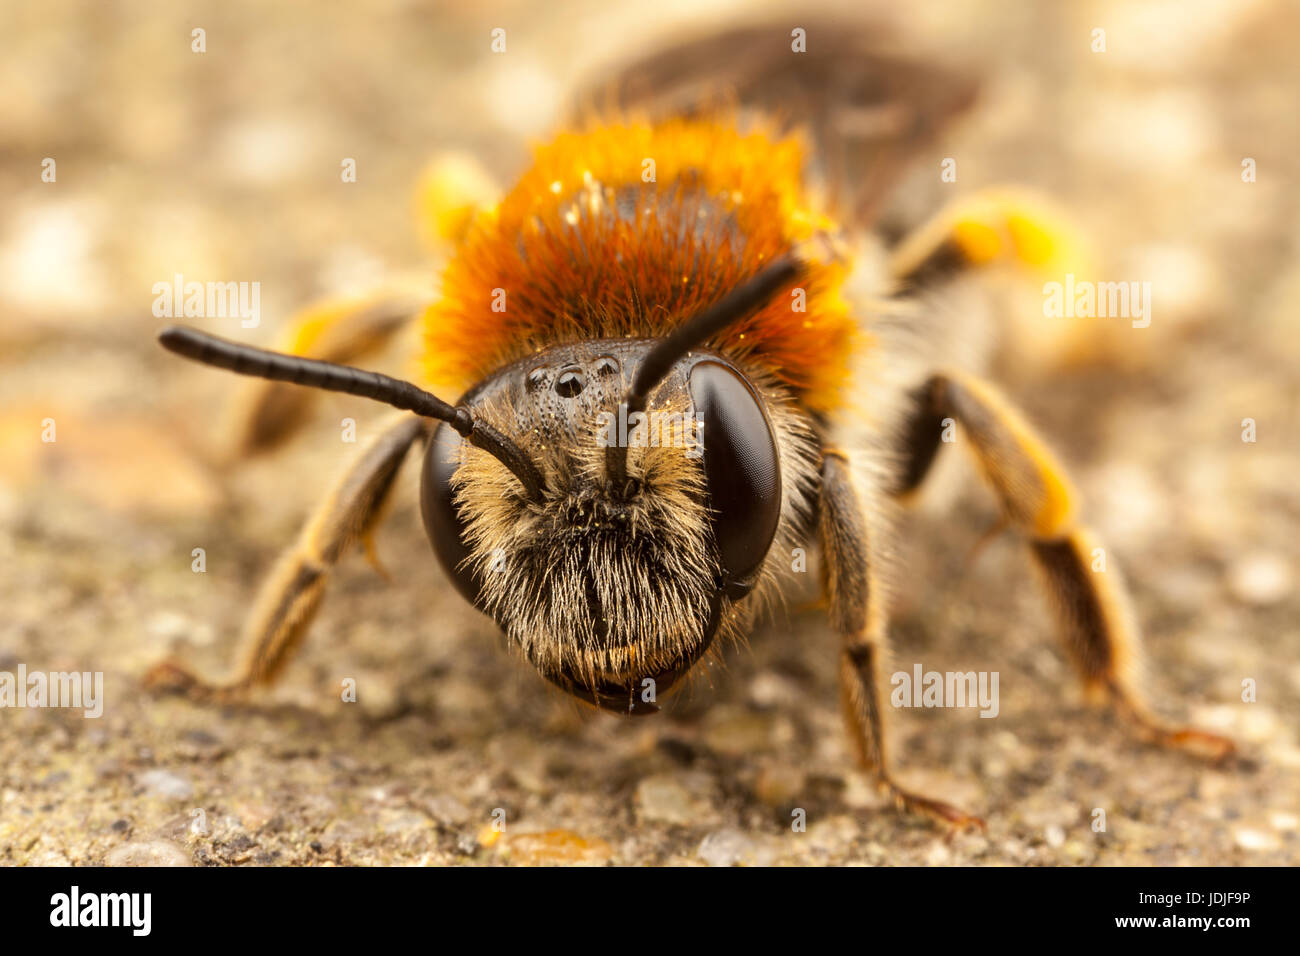 Orange Tailed Mining Bee, Andrena Haemorrhoa - Stock Image